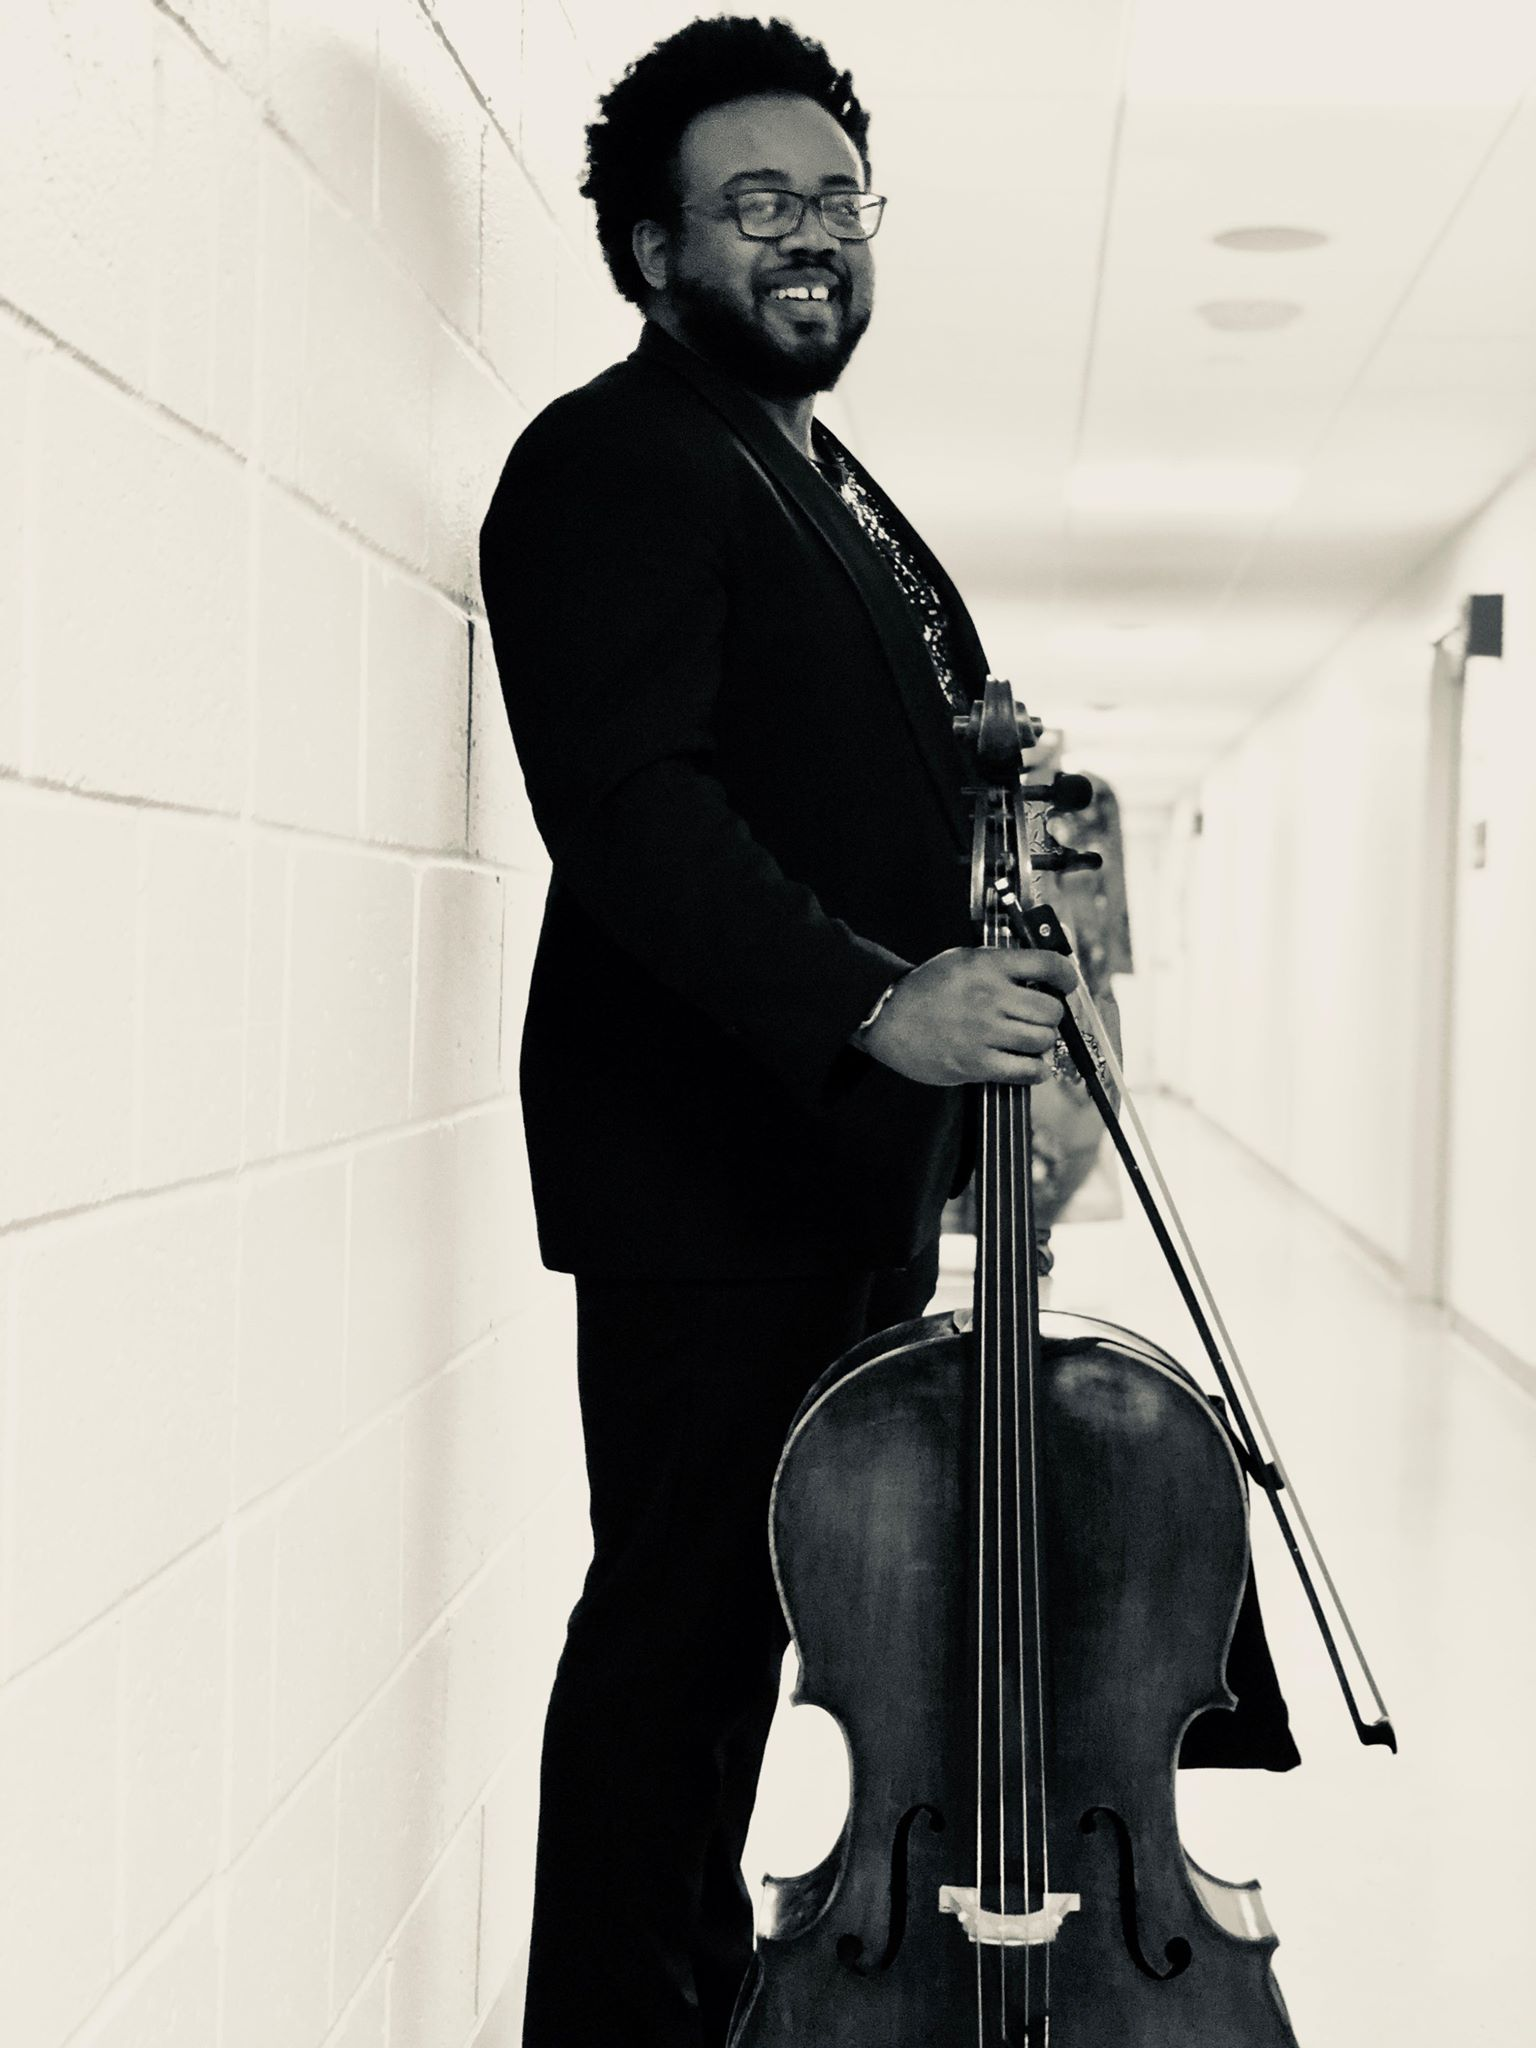 "Kevin Phillip Jones - Cello - Virginia native Kevin Phillip Jones began his cello studies with Alice Glasco and Virginia Symphony cellist Janet Kriner.At Old Dominion University, Kevin began studies with Carter Melin, and continued with Leslie Fritelli. In summers past, he has studied at The North Carolina School for the Arts, The National Symphony Orchestra Summer Music Institute at The Kennedy Center, Aria International Music Festival, and The Meadowmount School of Music (NY).Kevin currently resides in the Washington D.C. metro area, where he was recently soloist with the DC Strings orchestra. He performs with several opera companies including Maryland Lyric Opera, and Washington Opera Society. In addition, he has performed with jazz luminaries like Chelsey Green and The Green Project, and Noble Jolley. For the last two years, he has been a performer in The Pansy Craze variety burlesque show, as well as its house band GYNOCEROS—which recently appeared at the Shenandoah Fringe Festival in Virginia, and he recently completed a Professional fellowship with Hawaii Performing Arts Festival. This year has twice brought him to NPR's Tiny Desk series for ""All Songs Considered"": performing with hip-hop vocalist Mumu Fresh, aka Maimouna Youssef in July, and with Wu-Tang Clan's The RZA in November; in addition to the Distant Worlds Final Fantasy Orchestra, with ‪Nobuo Uematsu‬; the Game of Thrones orchestra tour with series composer Ramin Djawadi, and Father John Misty's 'God's Favorite Customer' tour. Kevin was most recently a guest soloist with the Colour of Music Festival Orchestra in Charleston, South Carolina."